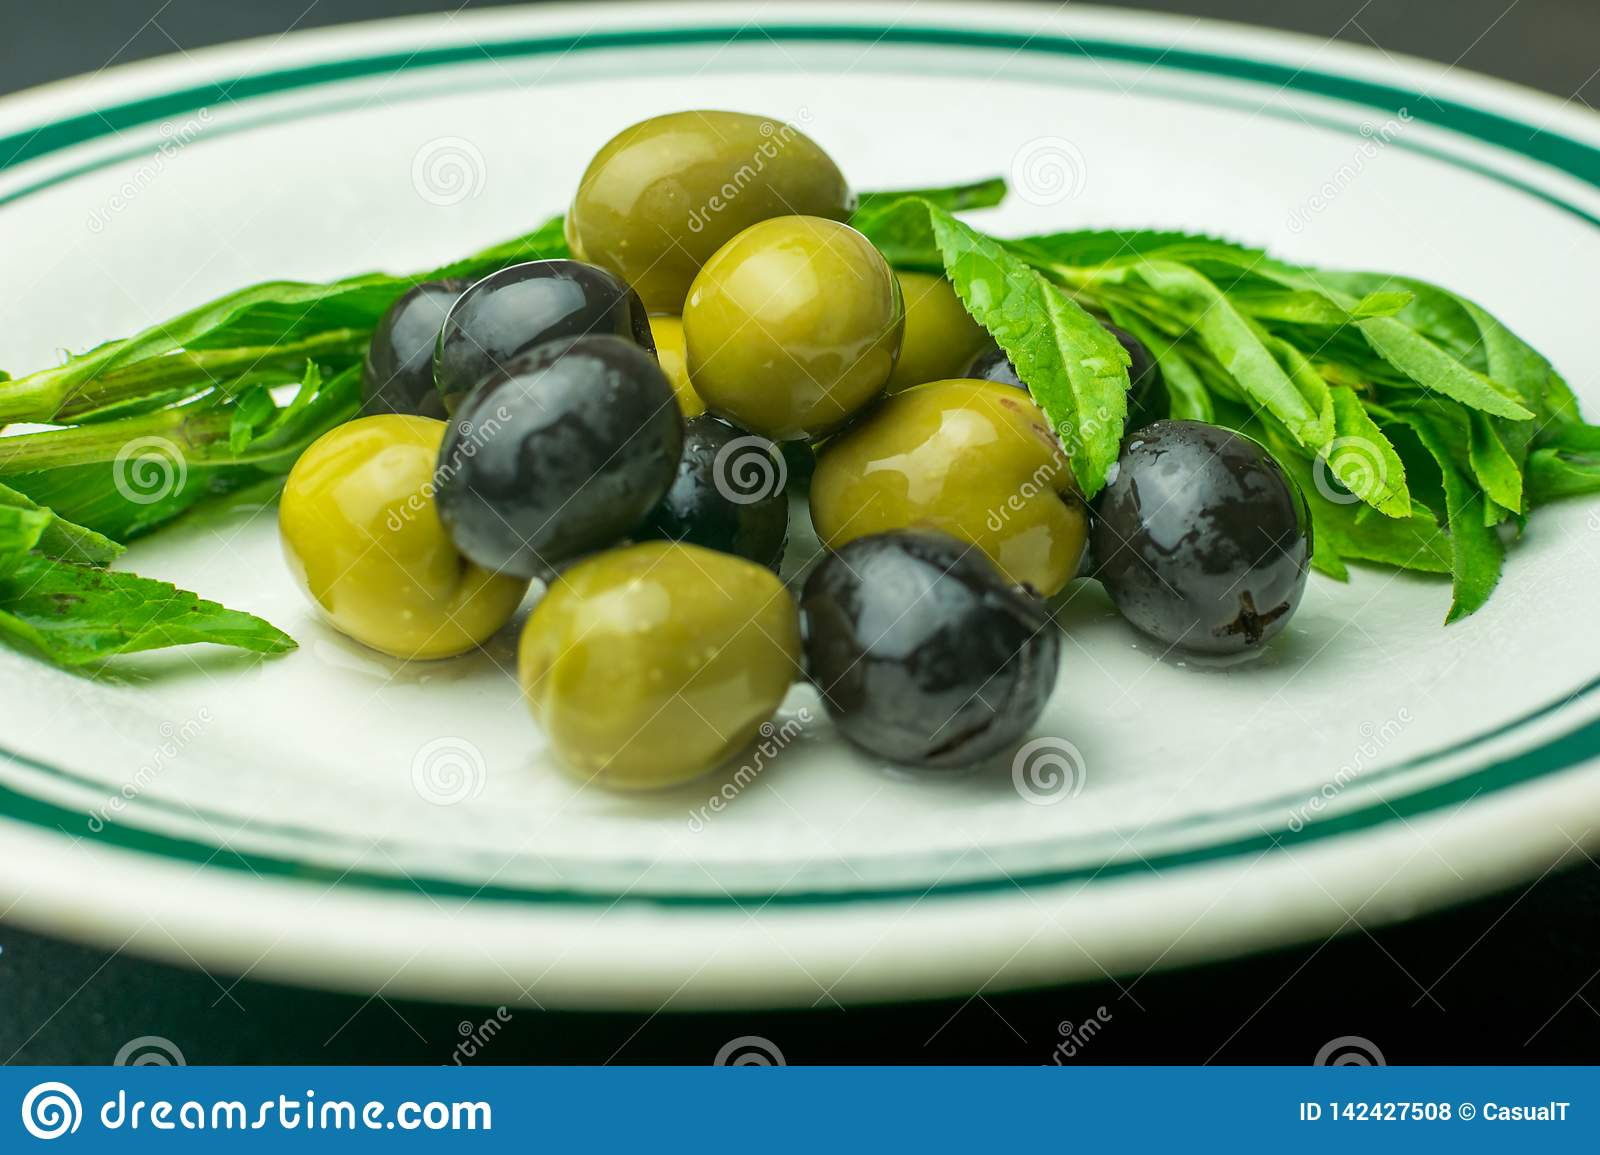 Fresh green and black olives, served on a white porcelain plate